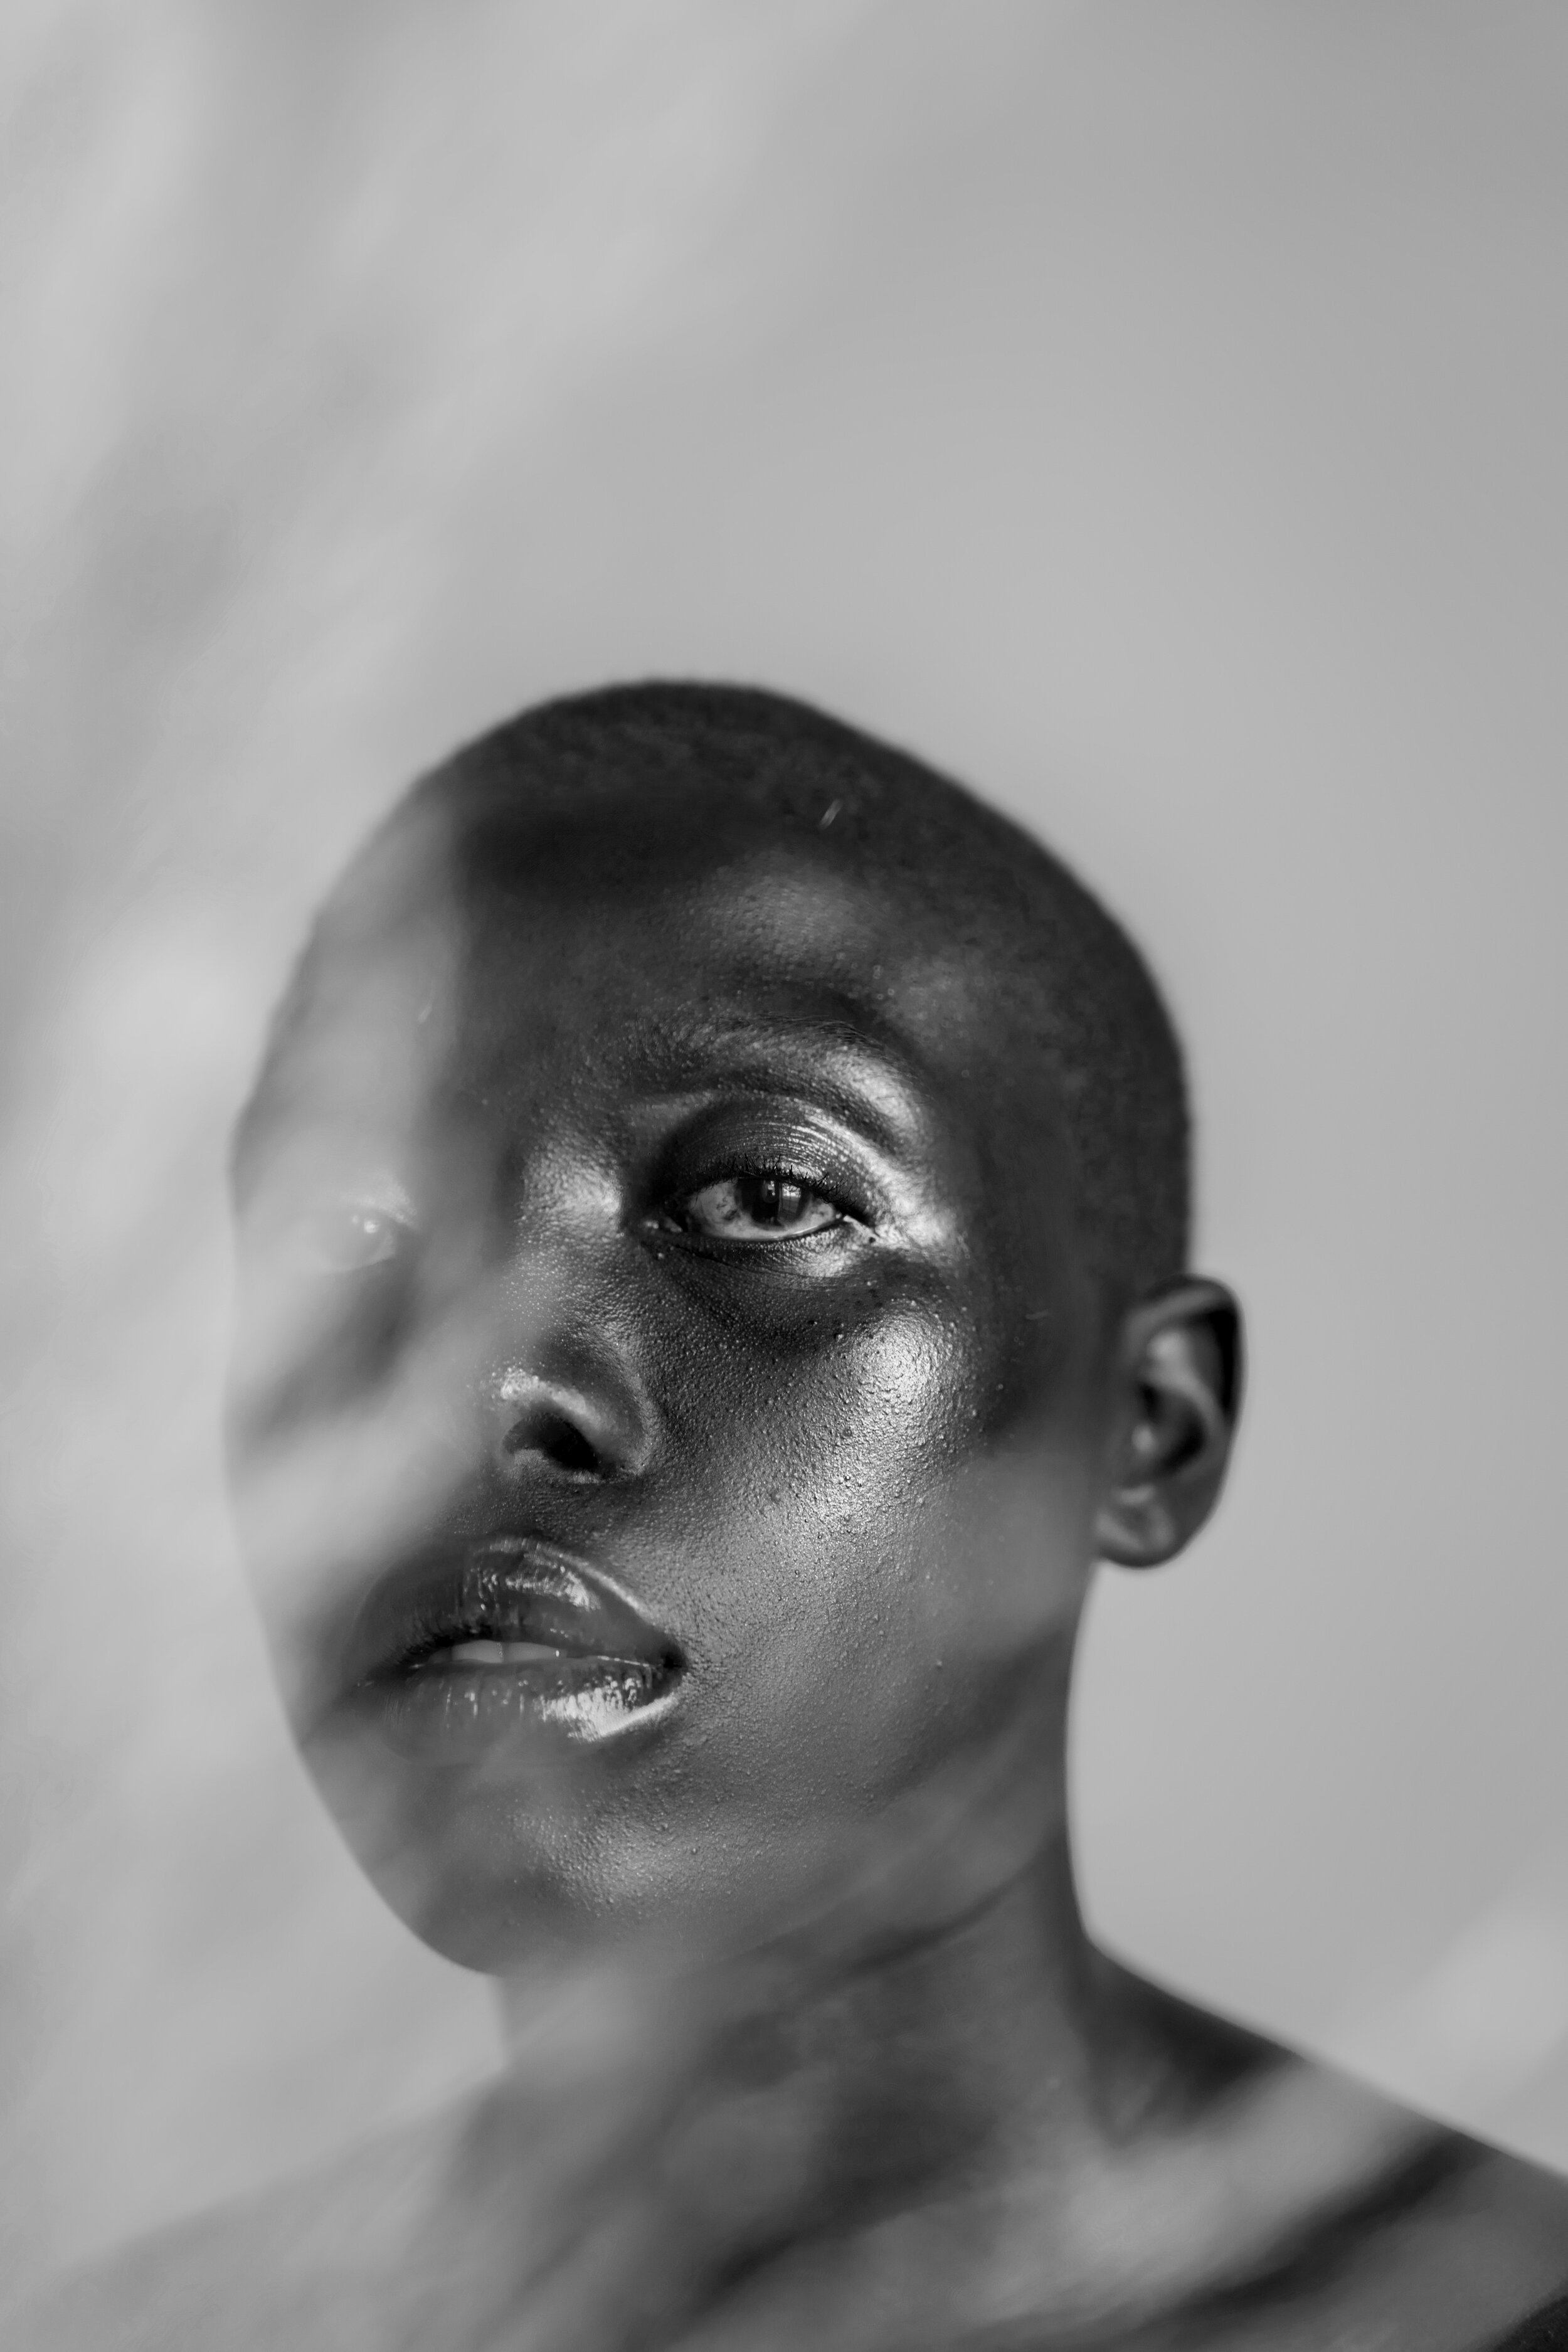 Artist:  Cole Ndelu   Title:  A Study of femininity: a radically soft portraiture project subverting the abject.   Medium:  Limited edition print on archival paper  Year:  2019  Size:  29.7 x 42.0cm   Edition size : 7  Edition number:  1/7  Price:  R10500 (Framed) R9000 (Unframed)